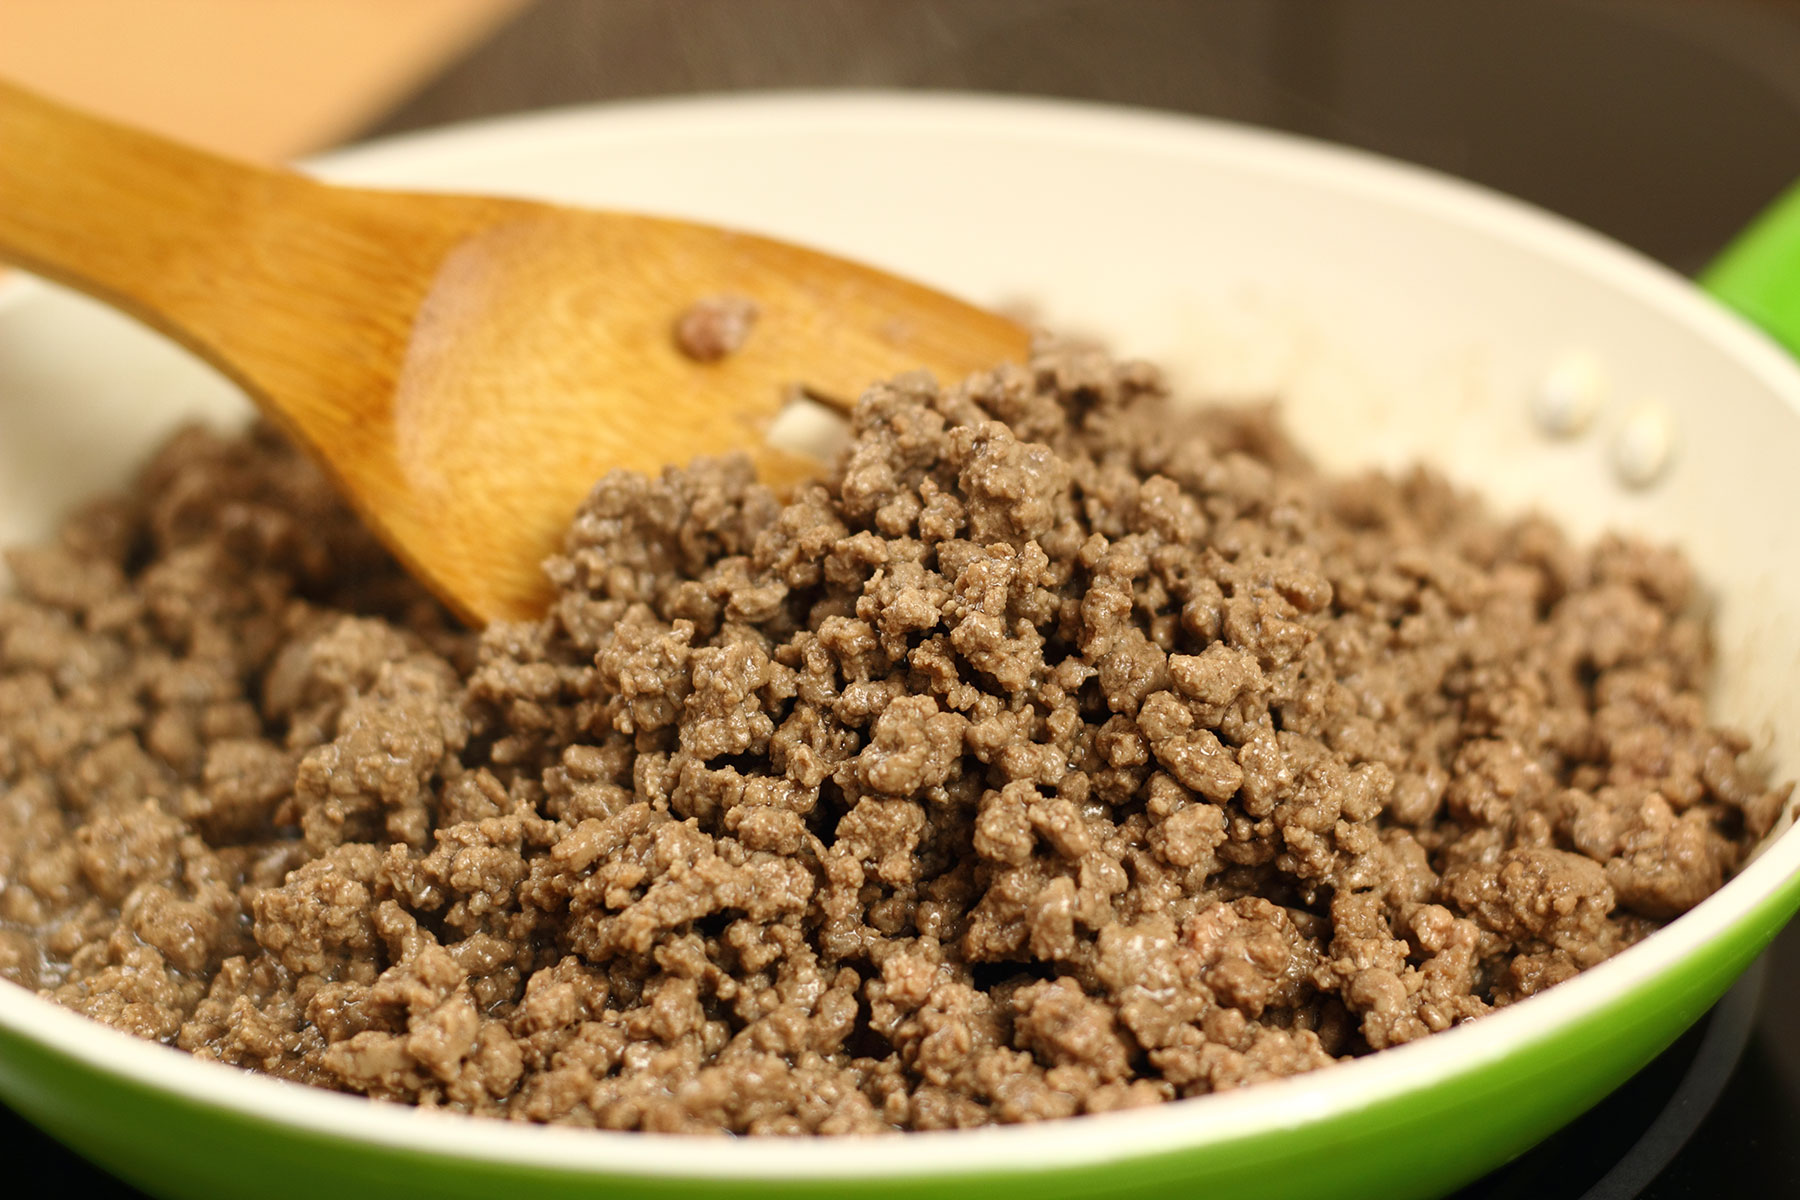 Browning ground beef in skillet with wooden spoon